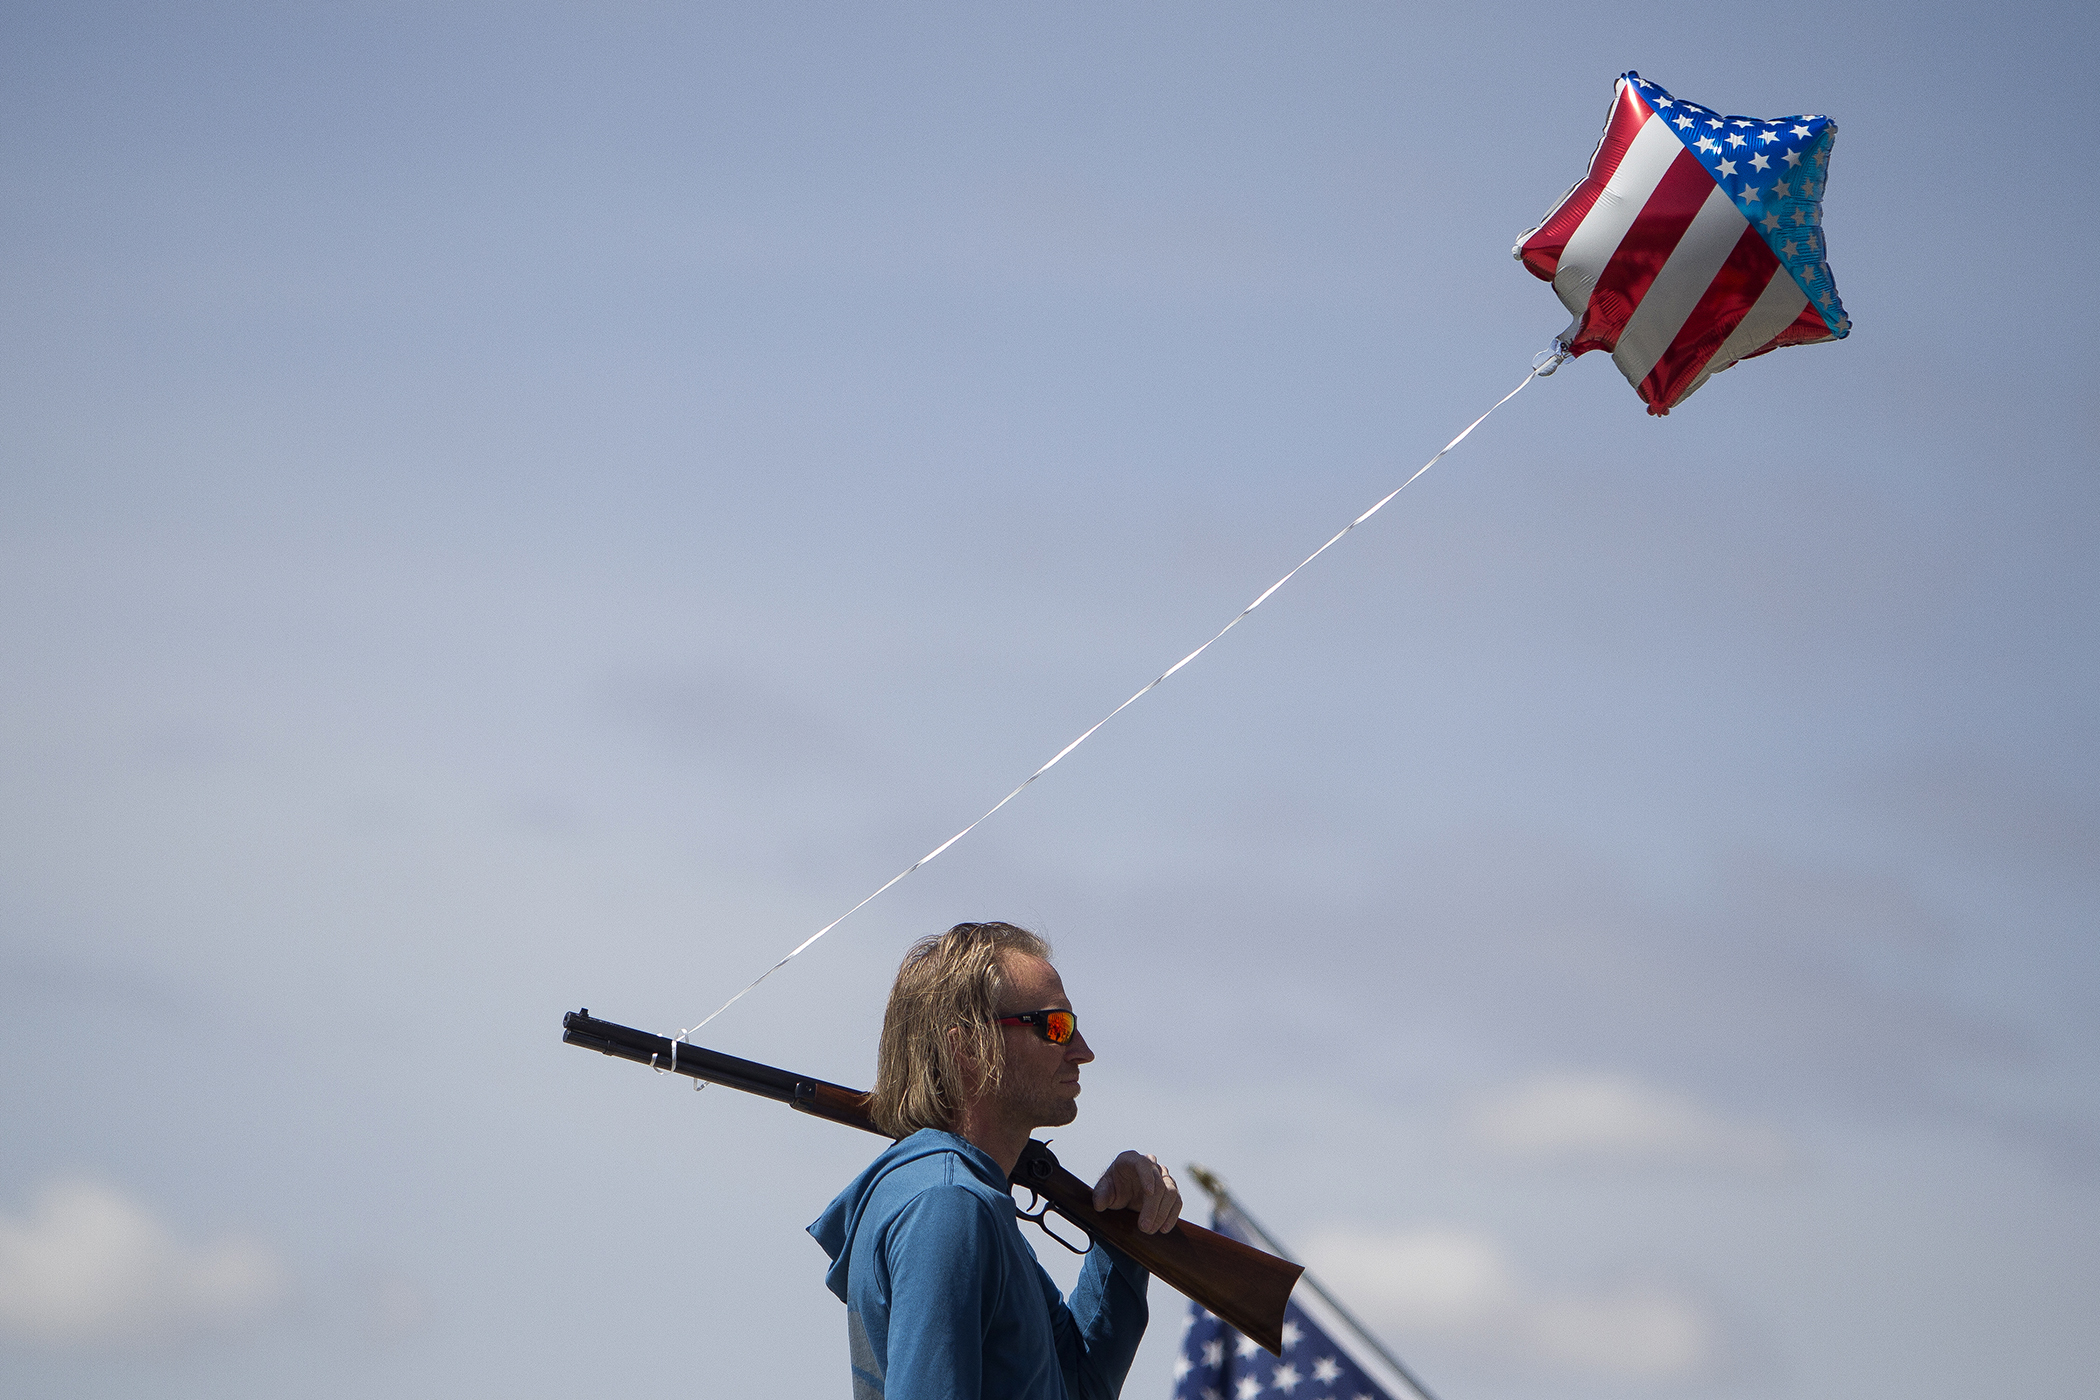 """Jason Desmond, of Lehi, rests his Winchester rifle, given to him by his grandfather, on his shoulder while attending a pro-gun rally on the steps of the Utah State Capitol on April 14 in Salt Lake City. Desmond said he attended the event because he believes people need to come out to support what they believe in. """"This is something I believe in,"""" Desmond said. """"I'm not a huge gun nut, but I don't like that the Second Amendment is under attack and getting all the attention that it is in the media."""" At the protest, demonstrators heard from numerous speakers airing their anti-gun control beliefs. — April 14, 2018, Salt Lake City, Utah."""